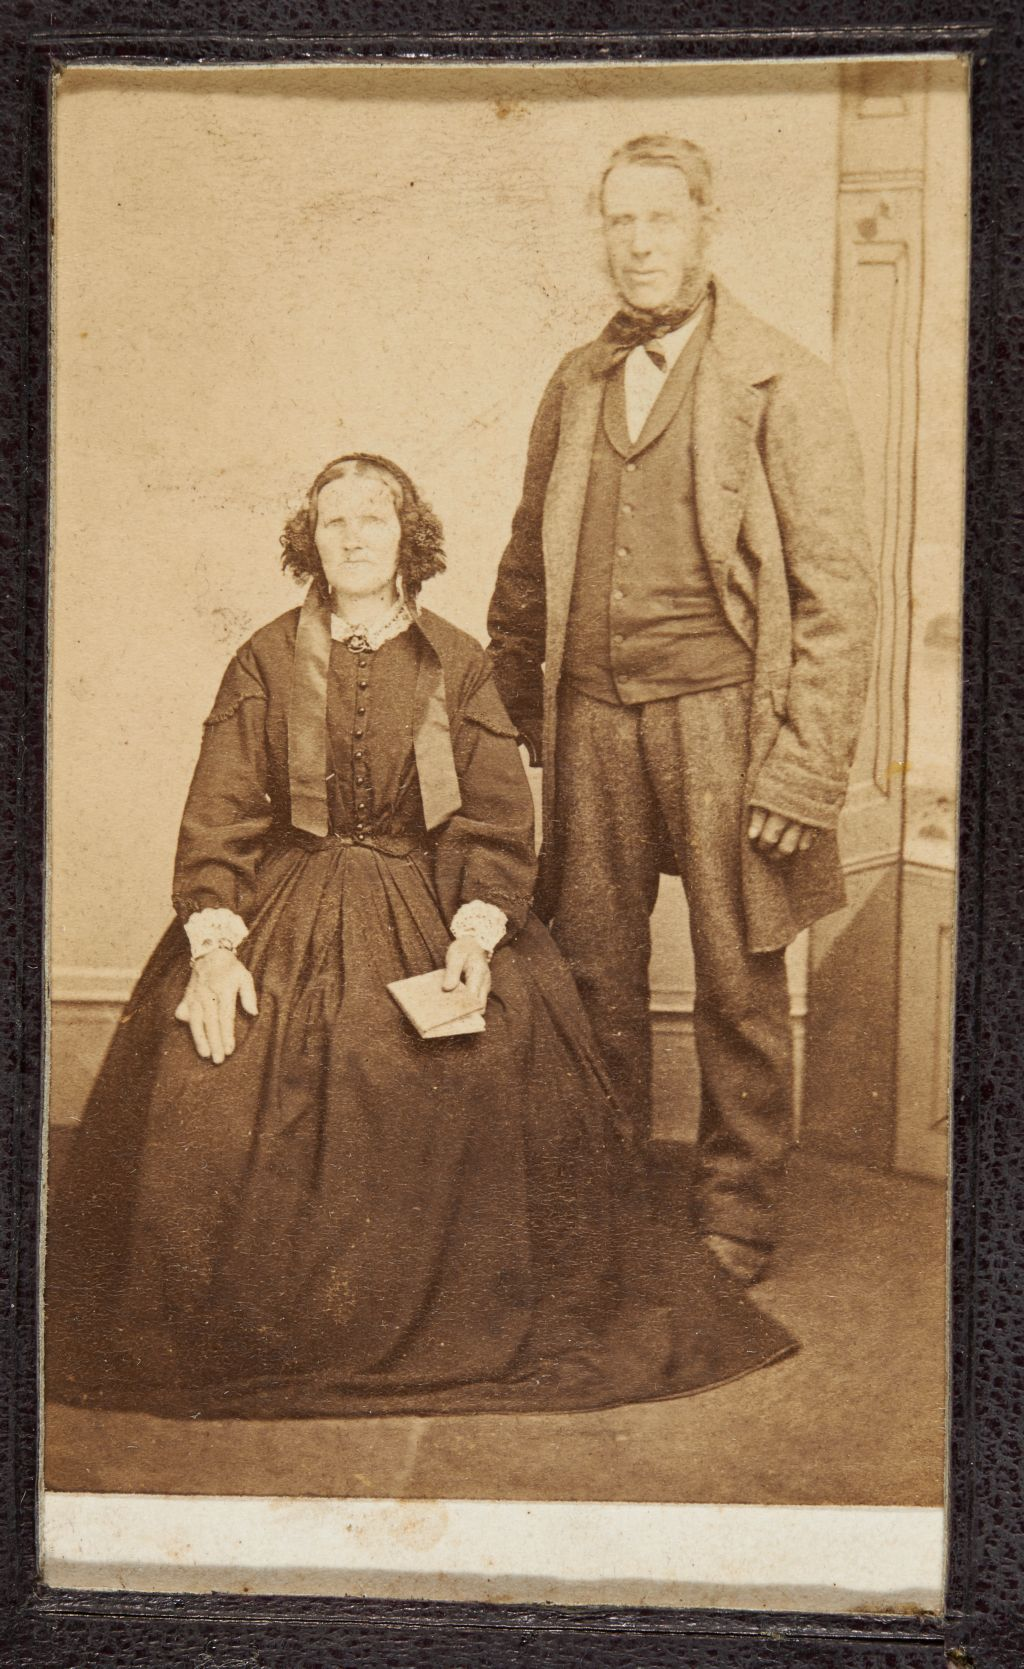 Untitled portrait of middle-aged woman and man